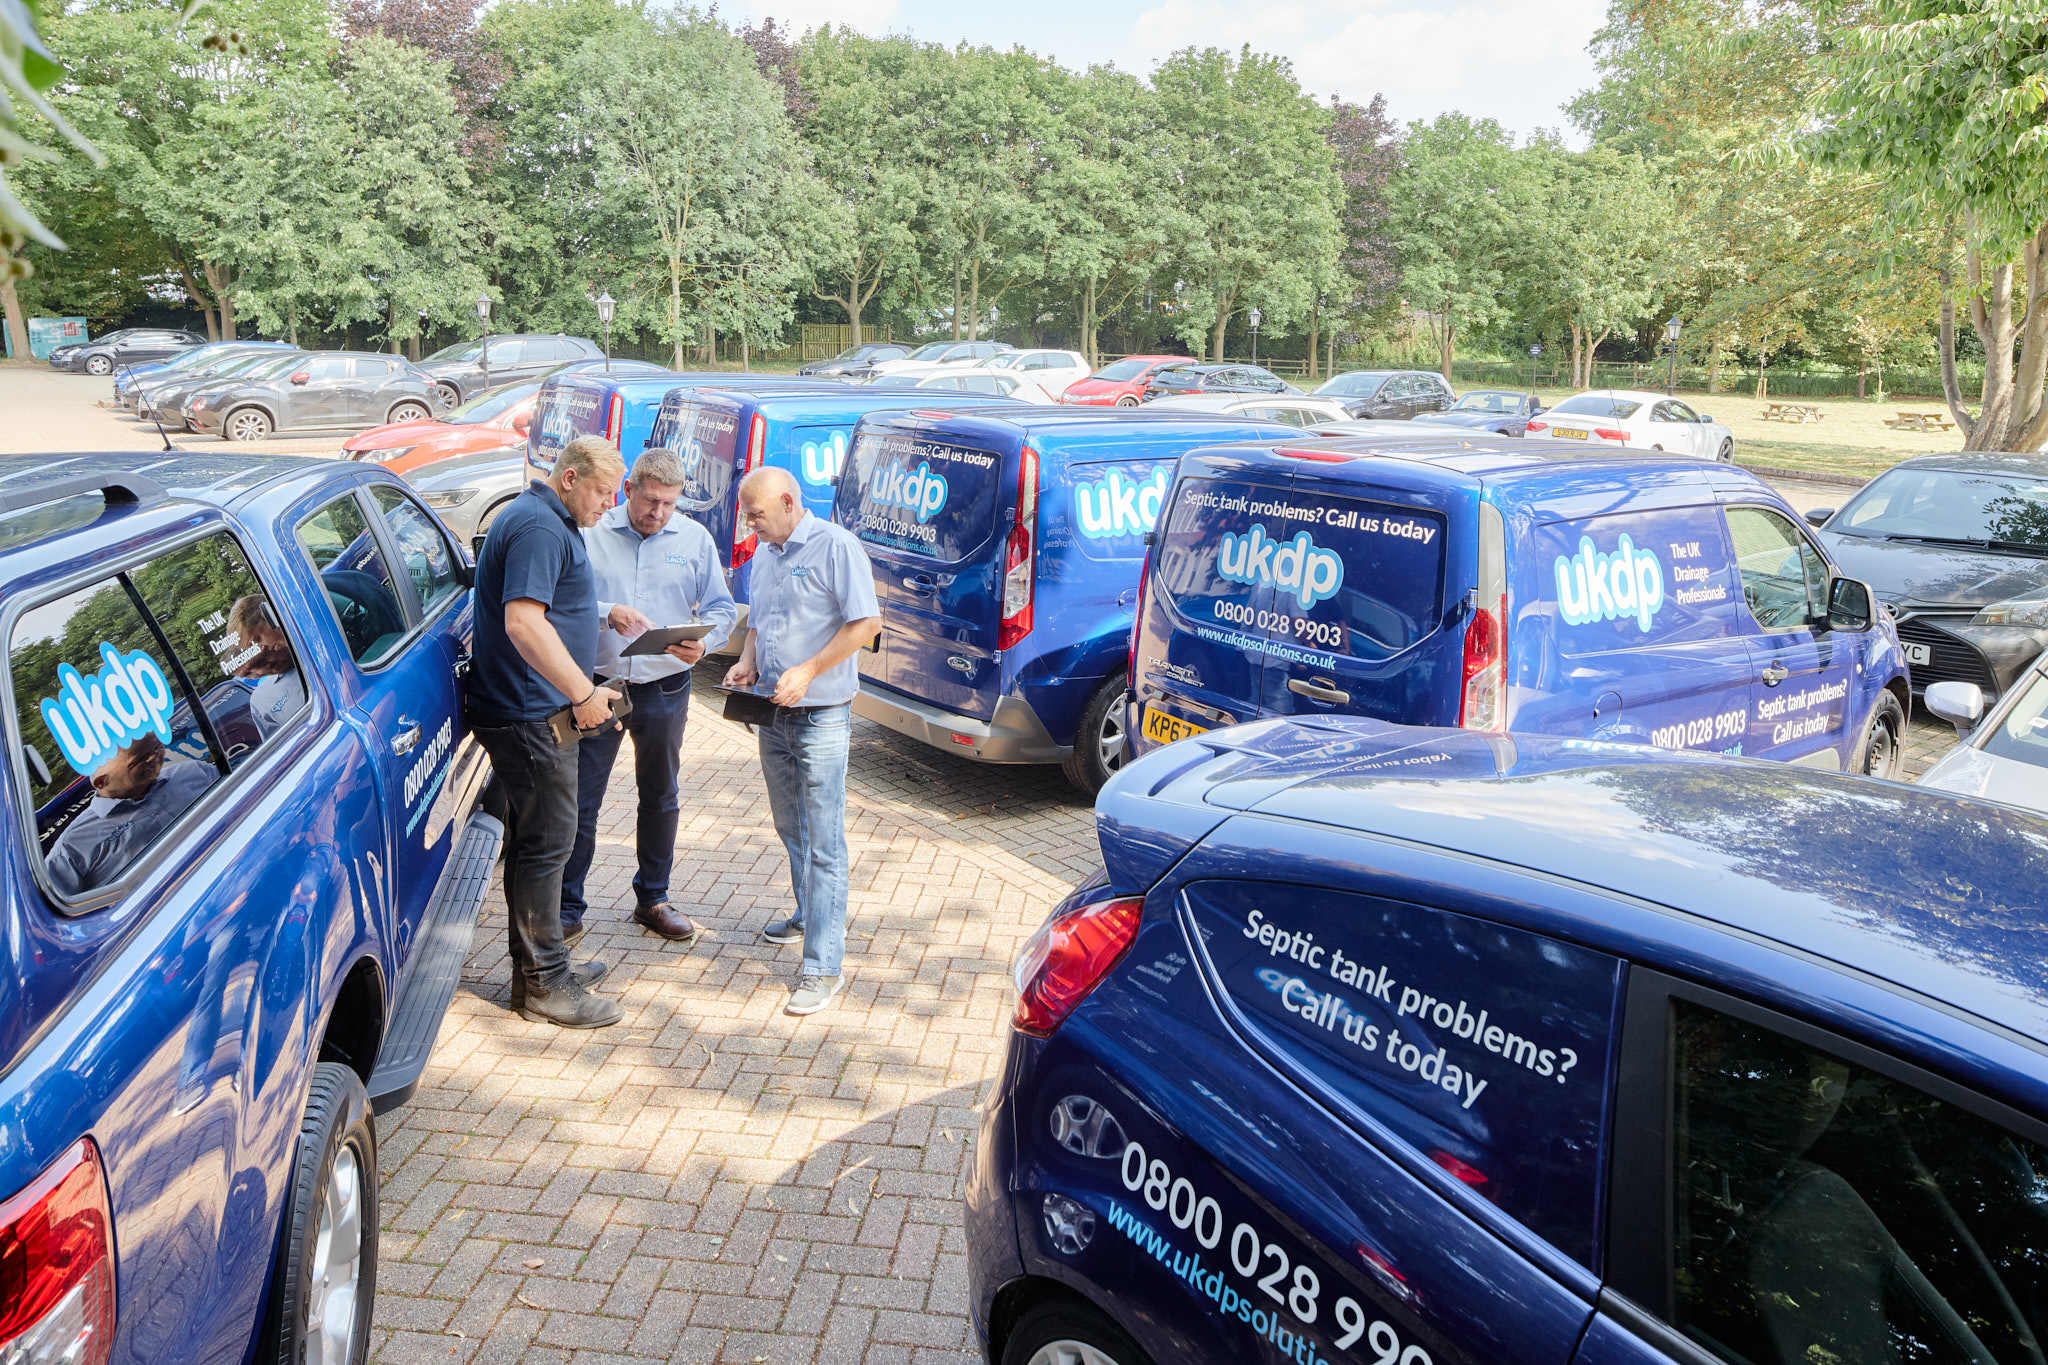 UKDP team with branded vehicle fleet